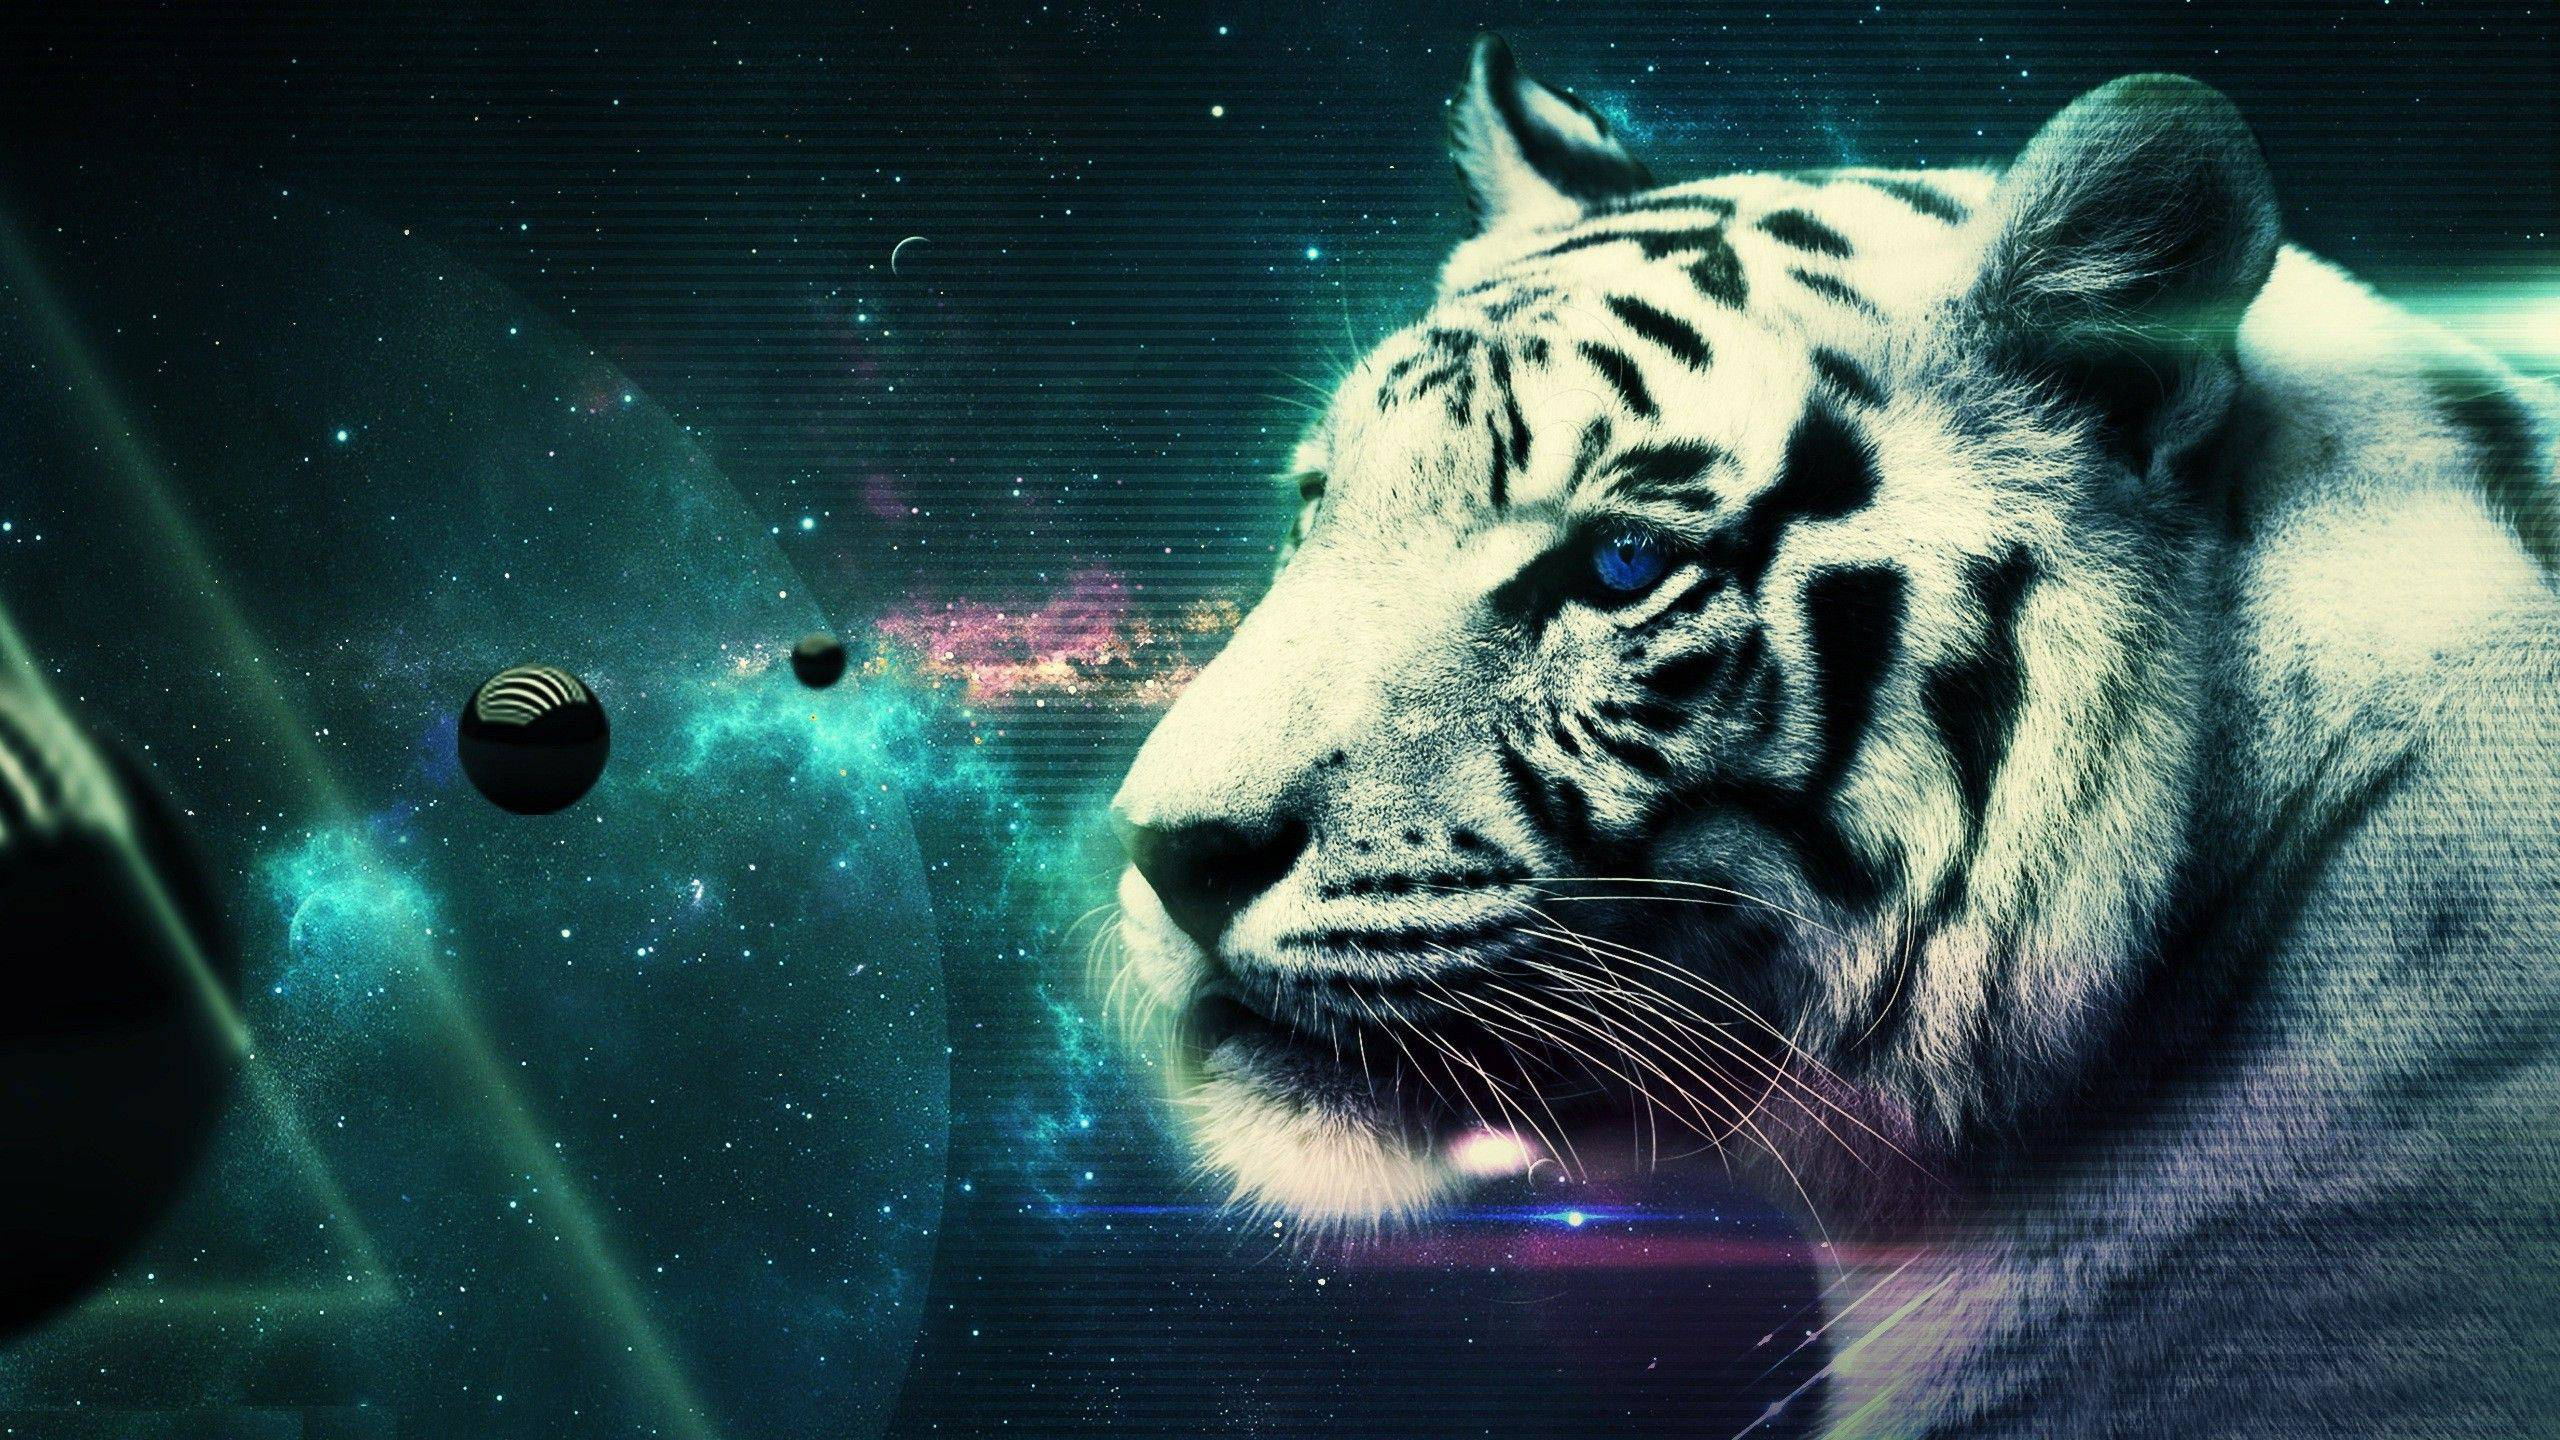 Cool Tiger Wallpapers   Top Cool Tiger Backgrounds 2560x1440